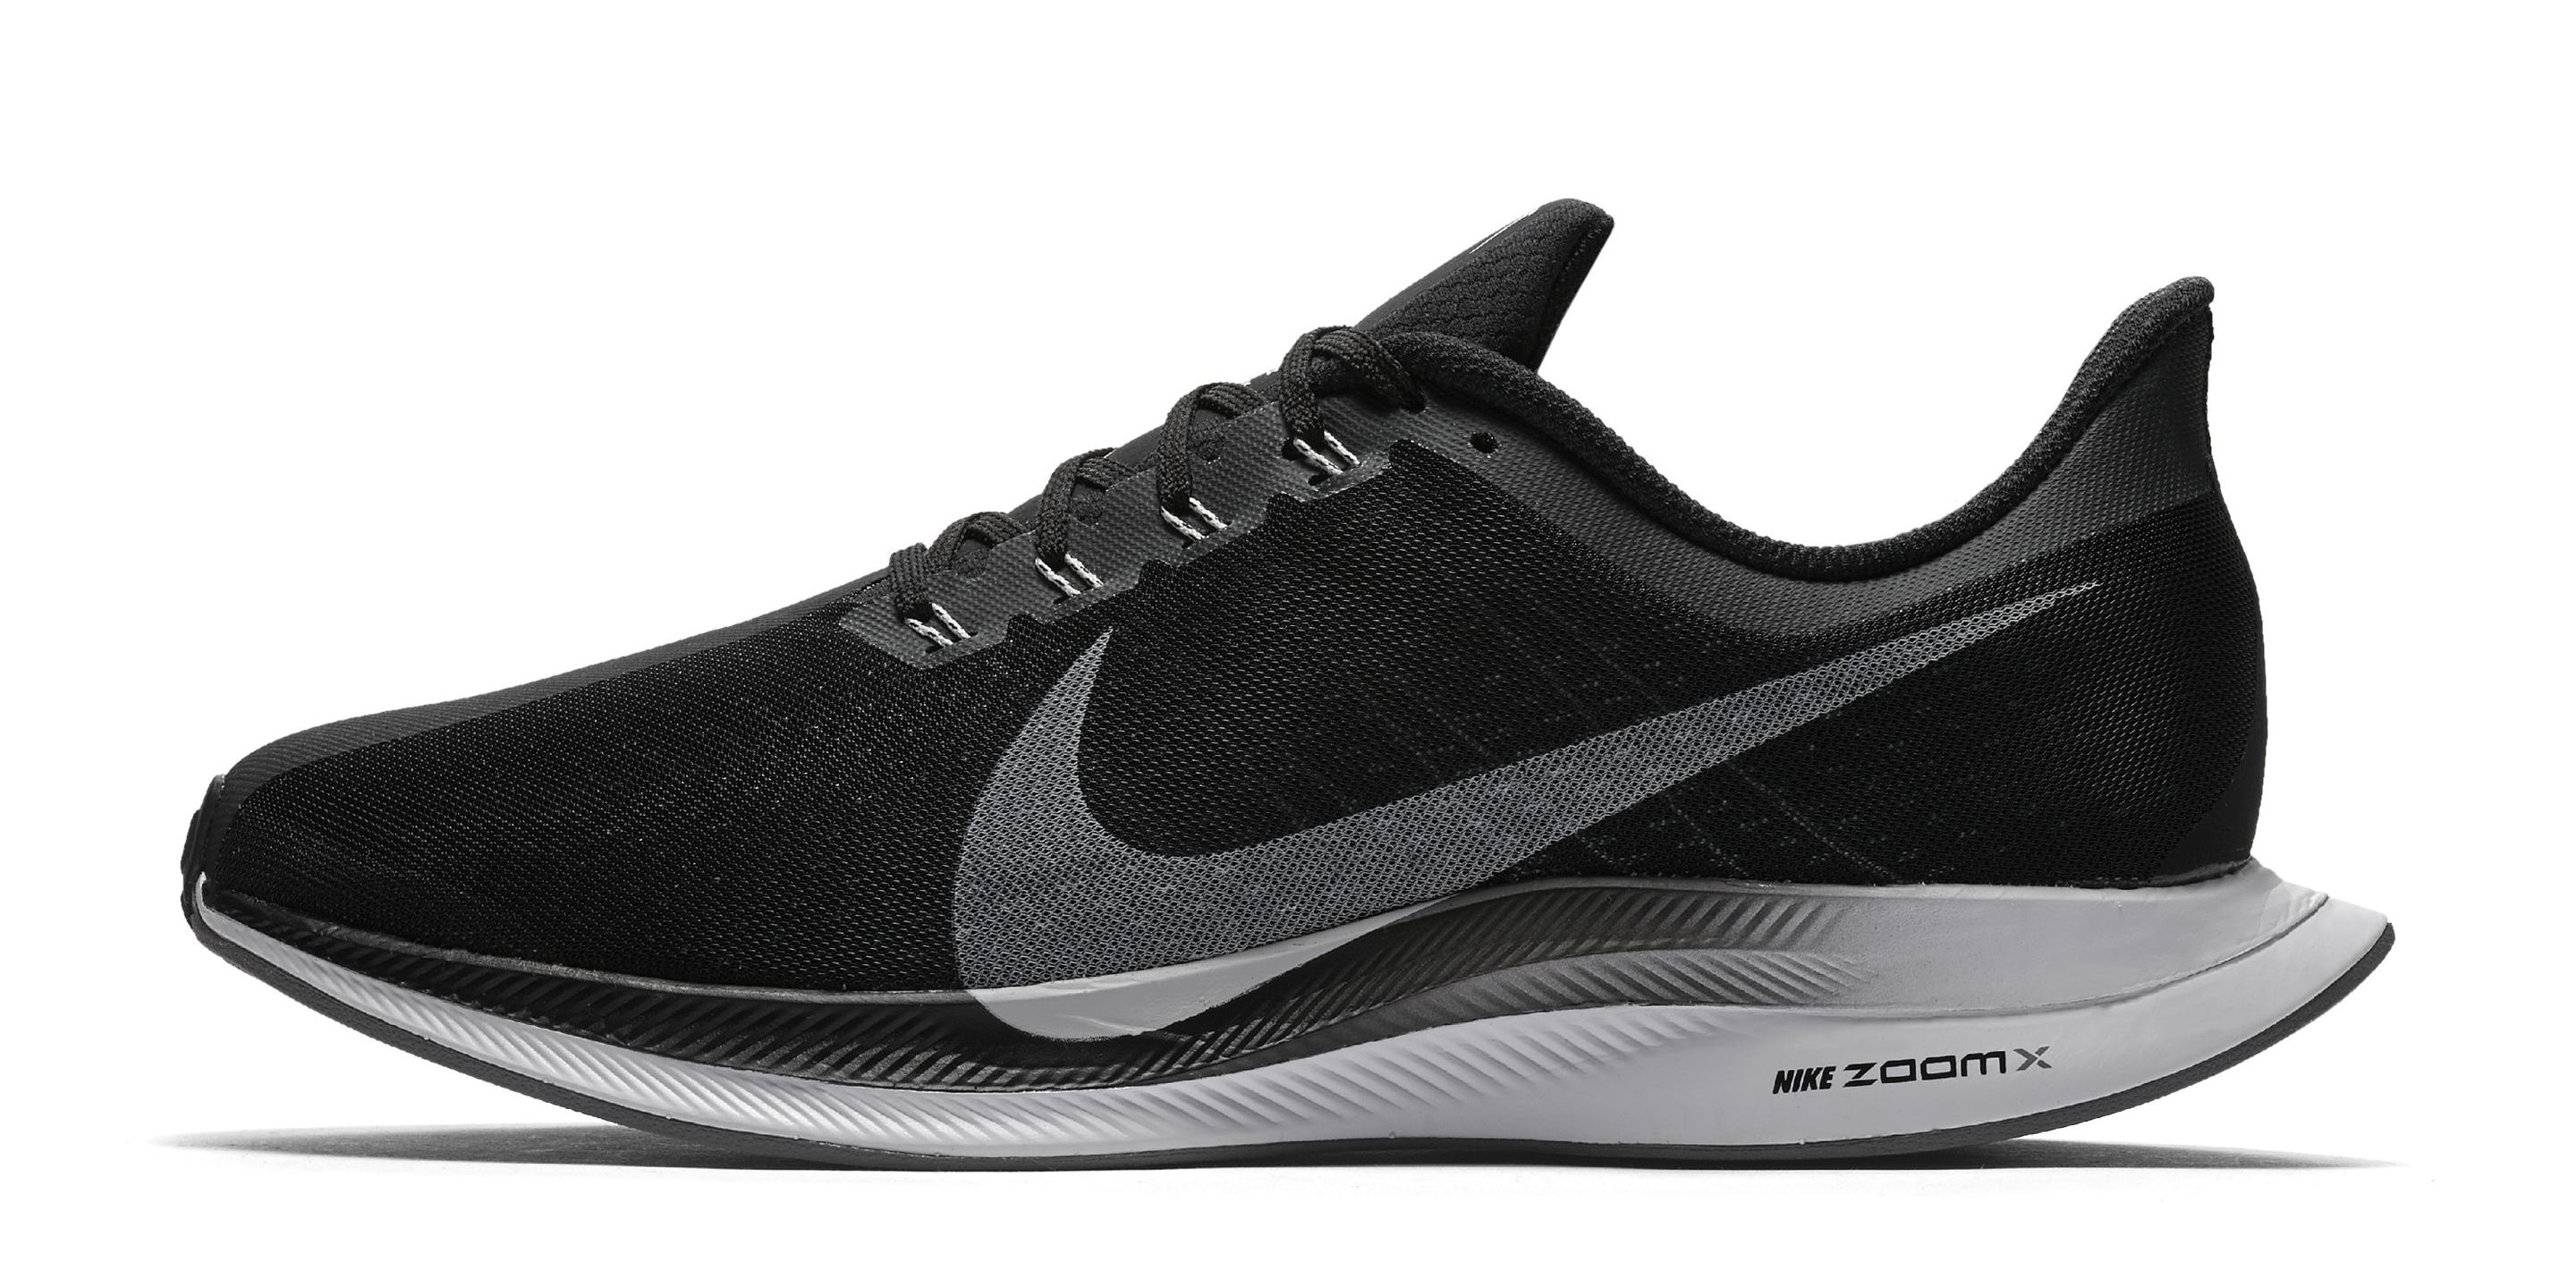 hot sale online b97c3 7dad3 Best Nike Running Shoes   Nike Shoe Reviews 2019